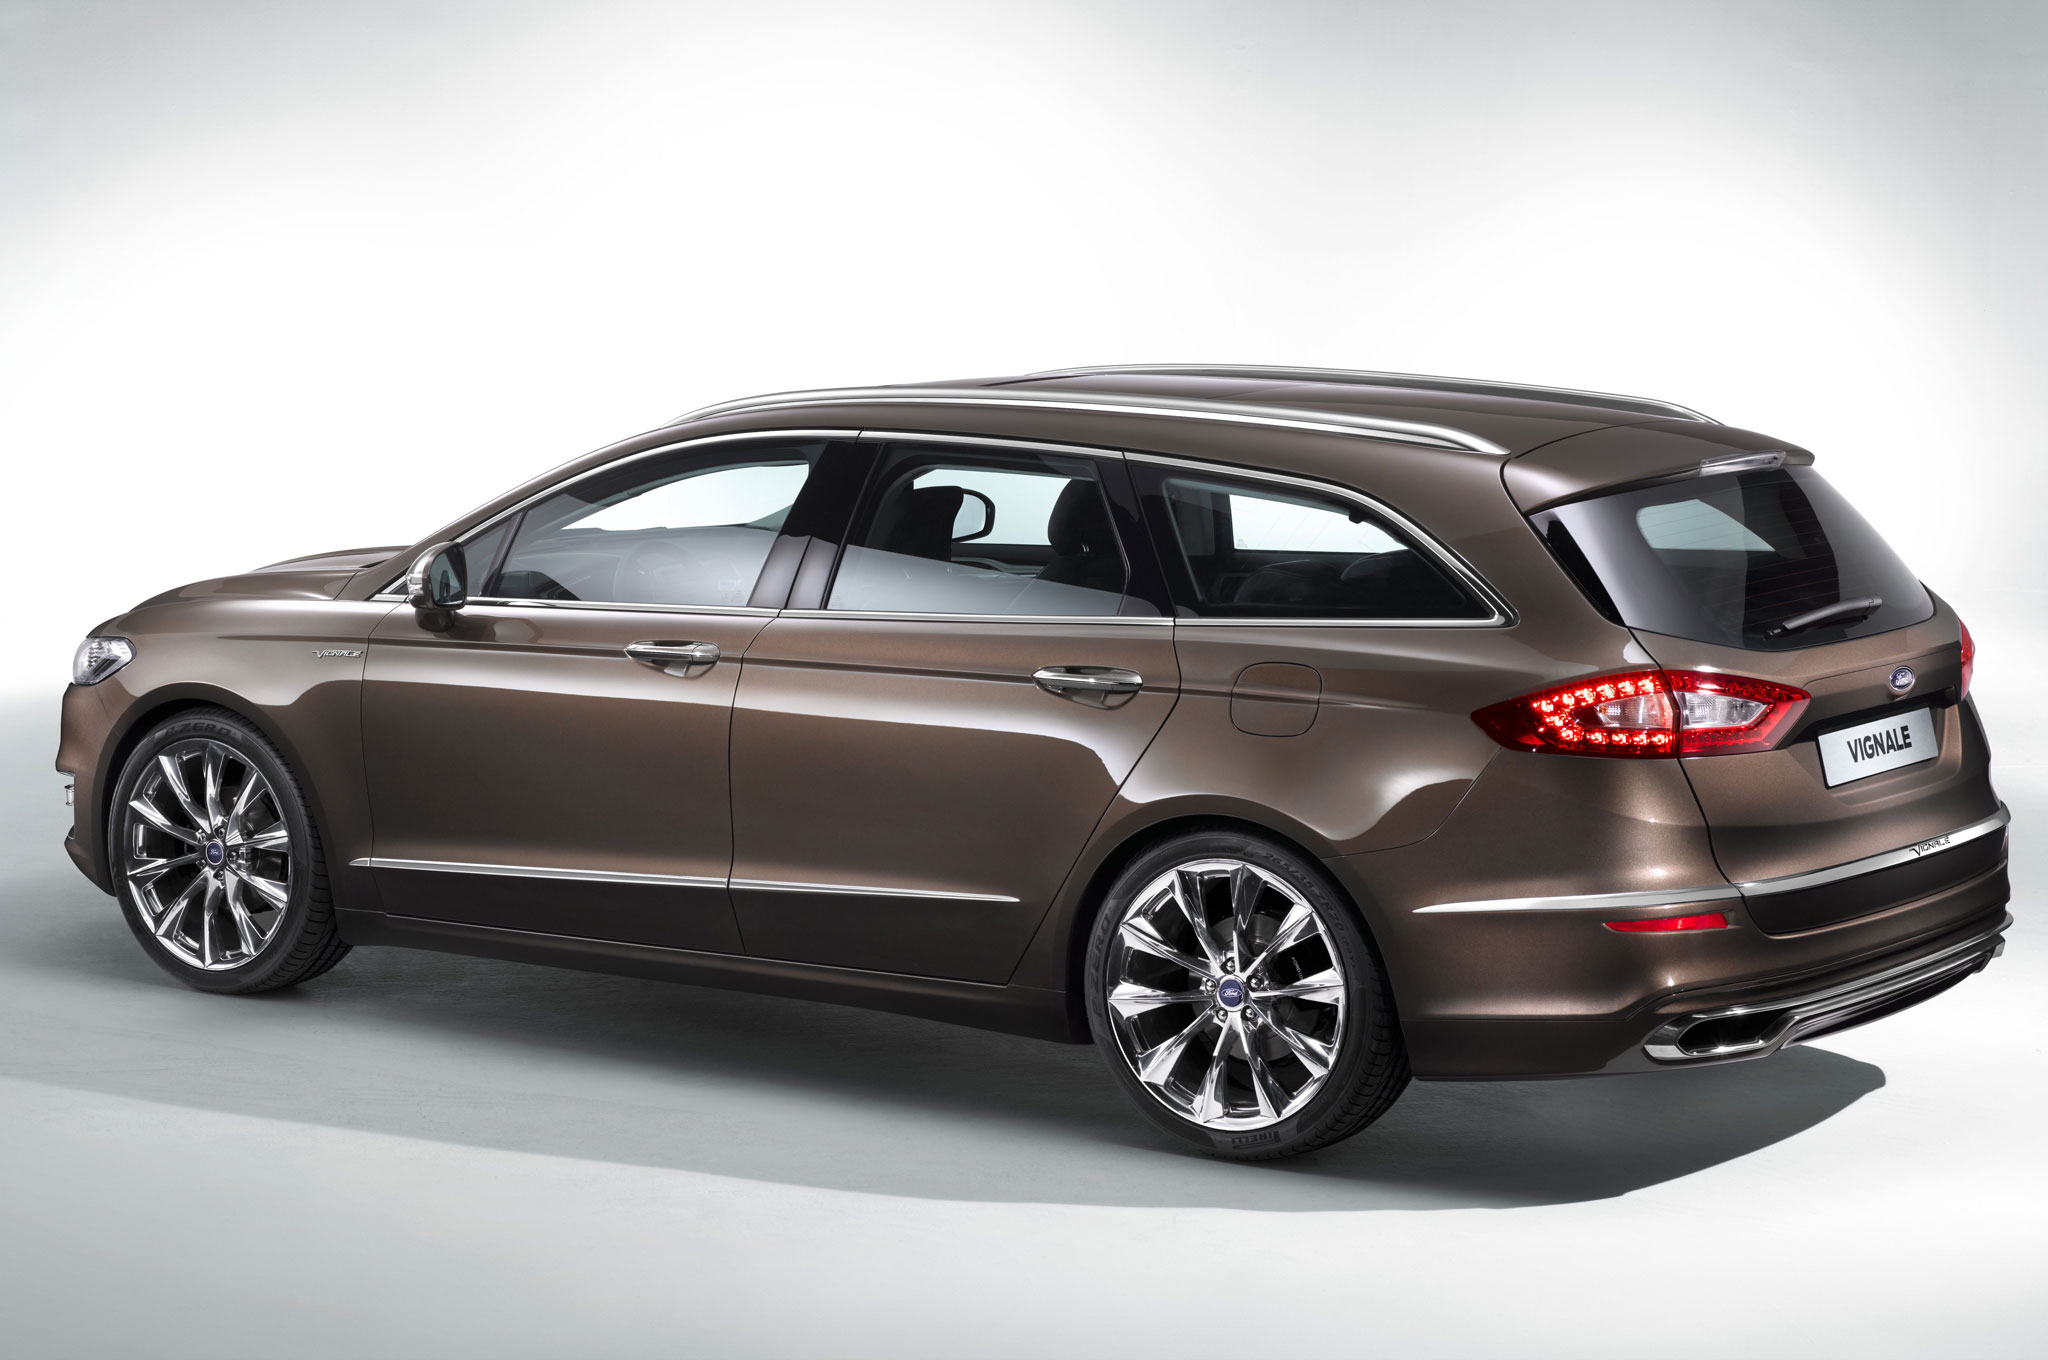 2017 Ford Mondeo Wagon Concept photo - 1